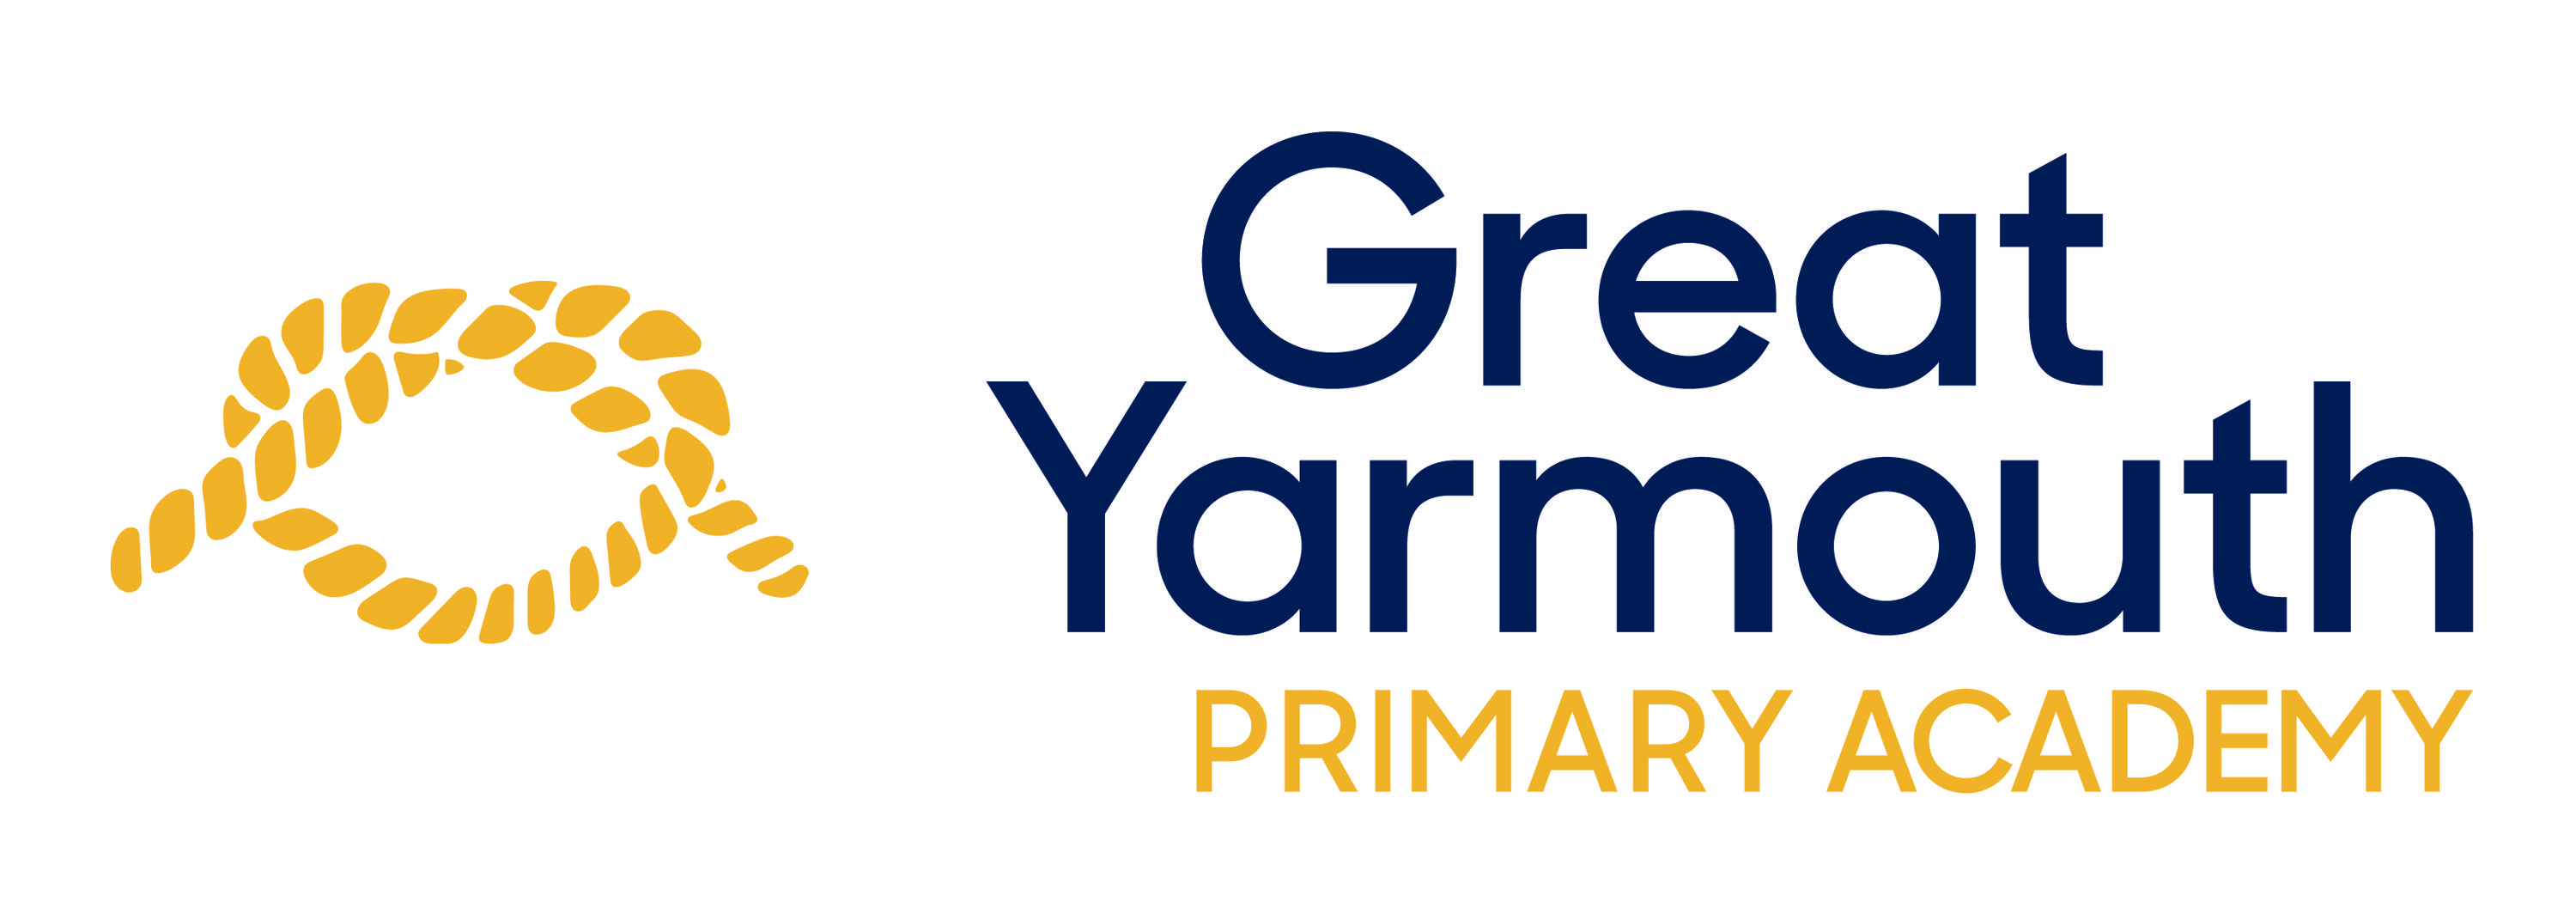 Great Yarmouth Primary Academy